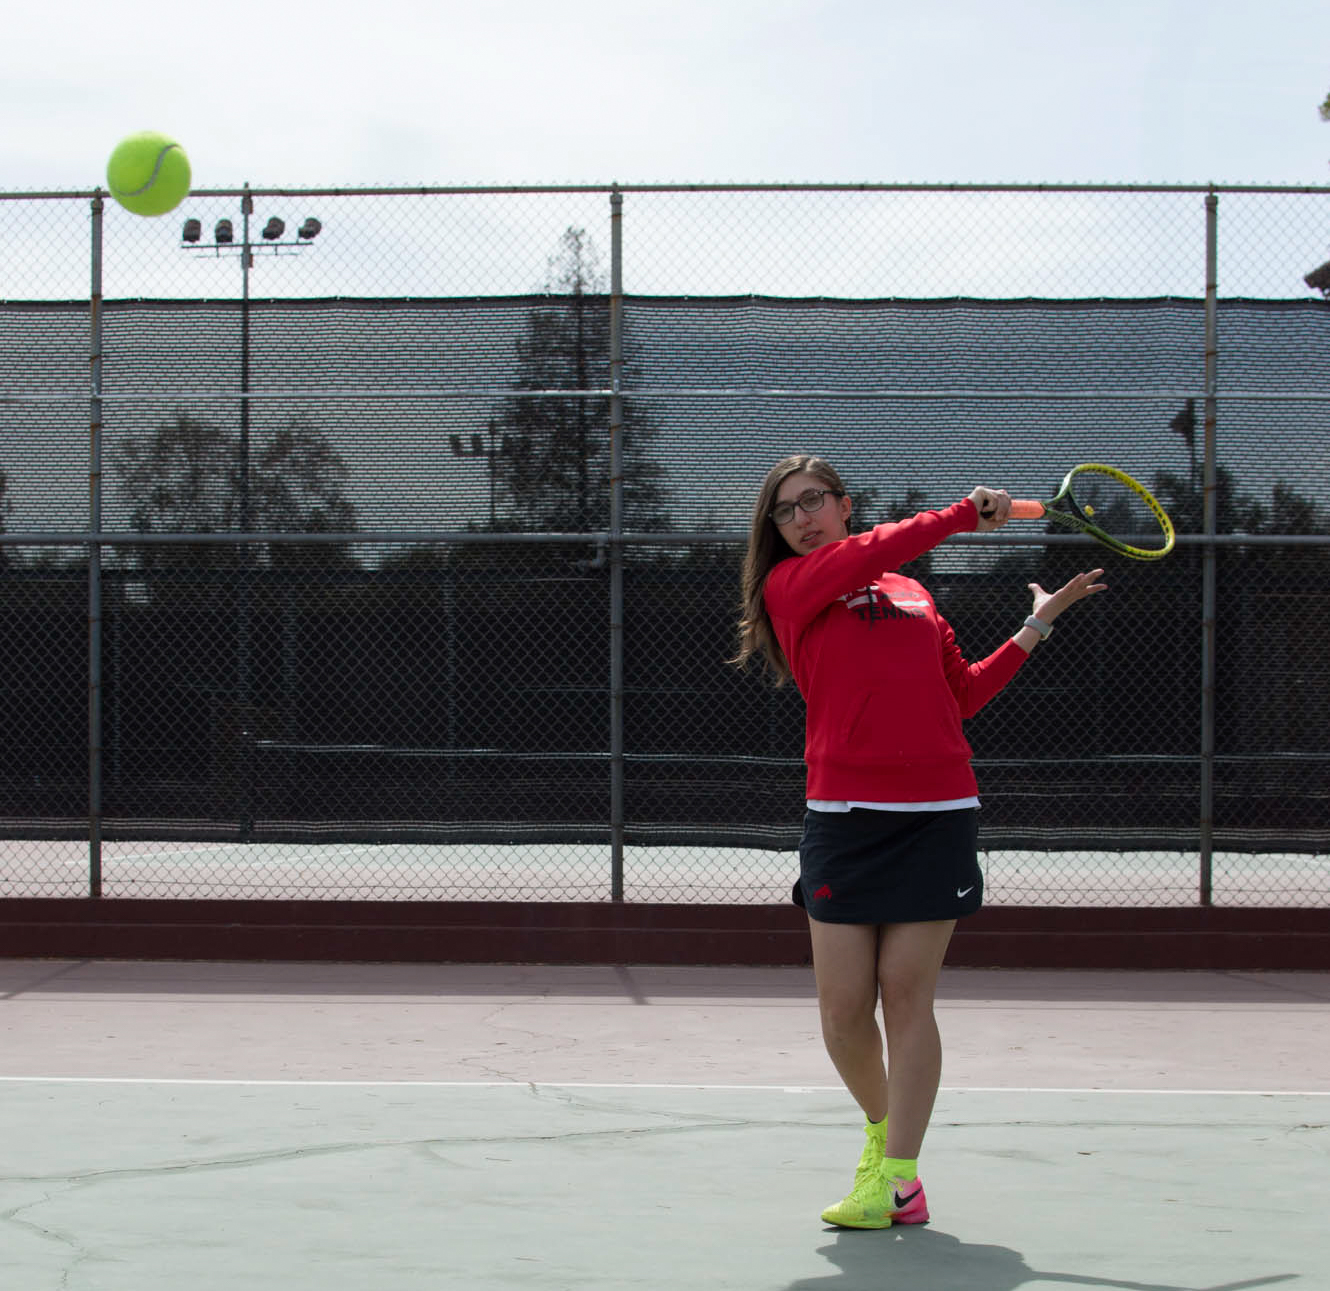 Tennis starts with (double) love